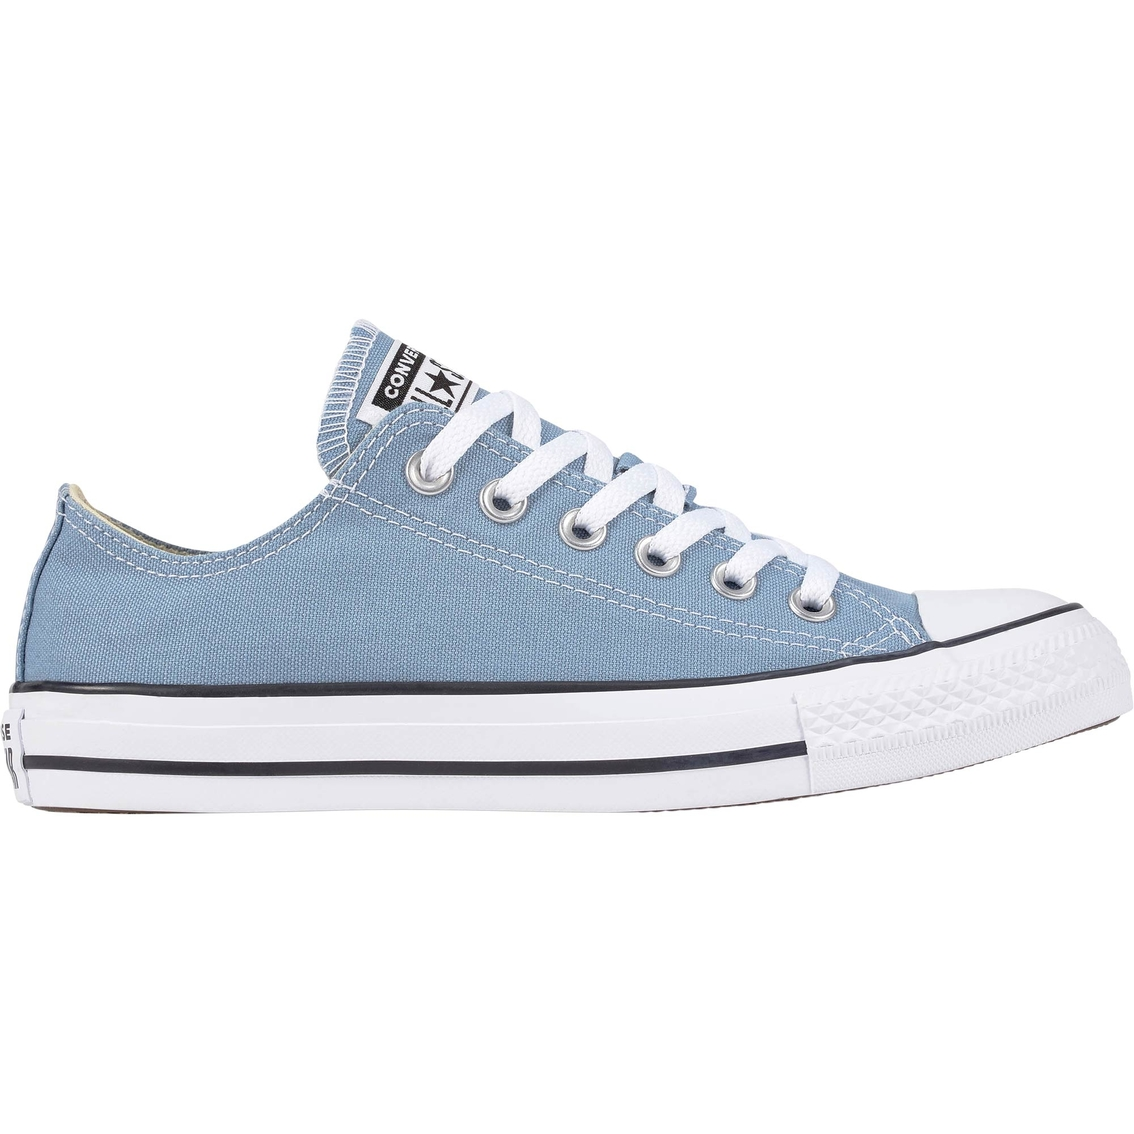 81c8532e058d Converse Women s Chuck Taylor All Star Ox Sneakers